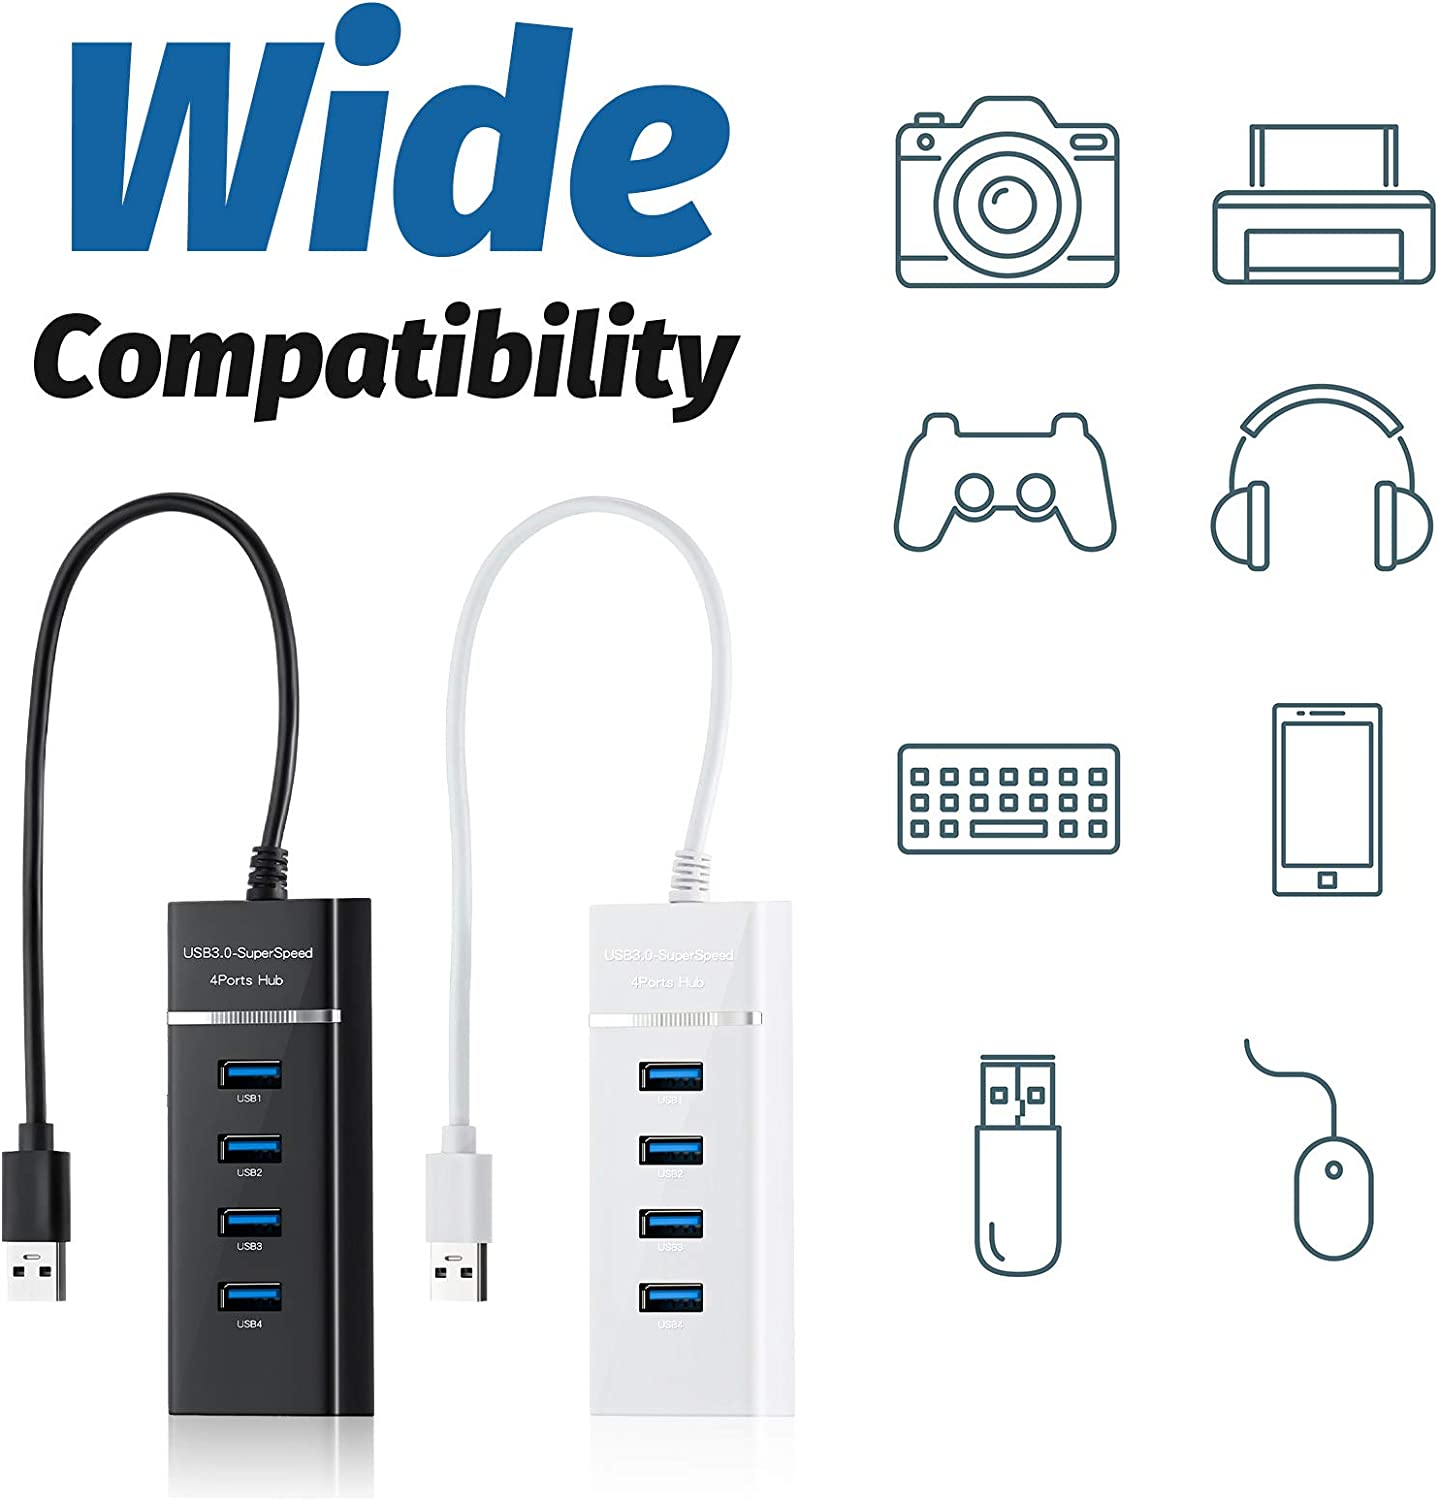 Konohan 4 Pieces 4-Port USB Hubs Portable USB Expander USB 3.0 Slim Data Hub with 30 cm/ 11.8 Inch Extended Cable Compatible with Windows 7/ Vista / XP and Other Operating Systems, Black and White